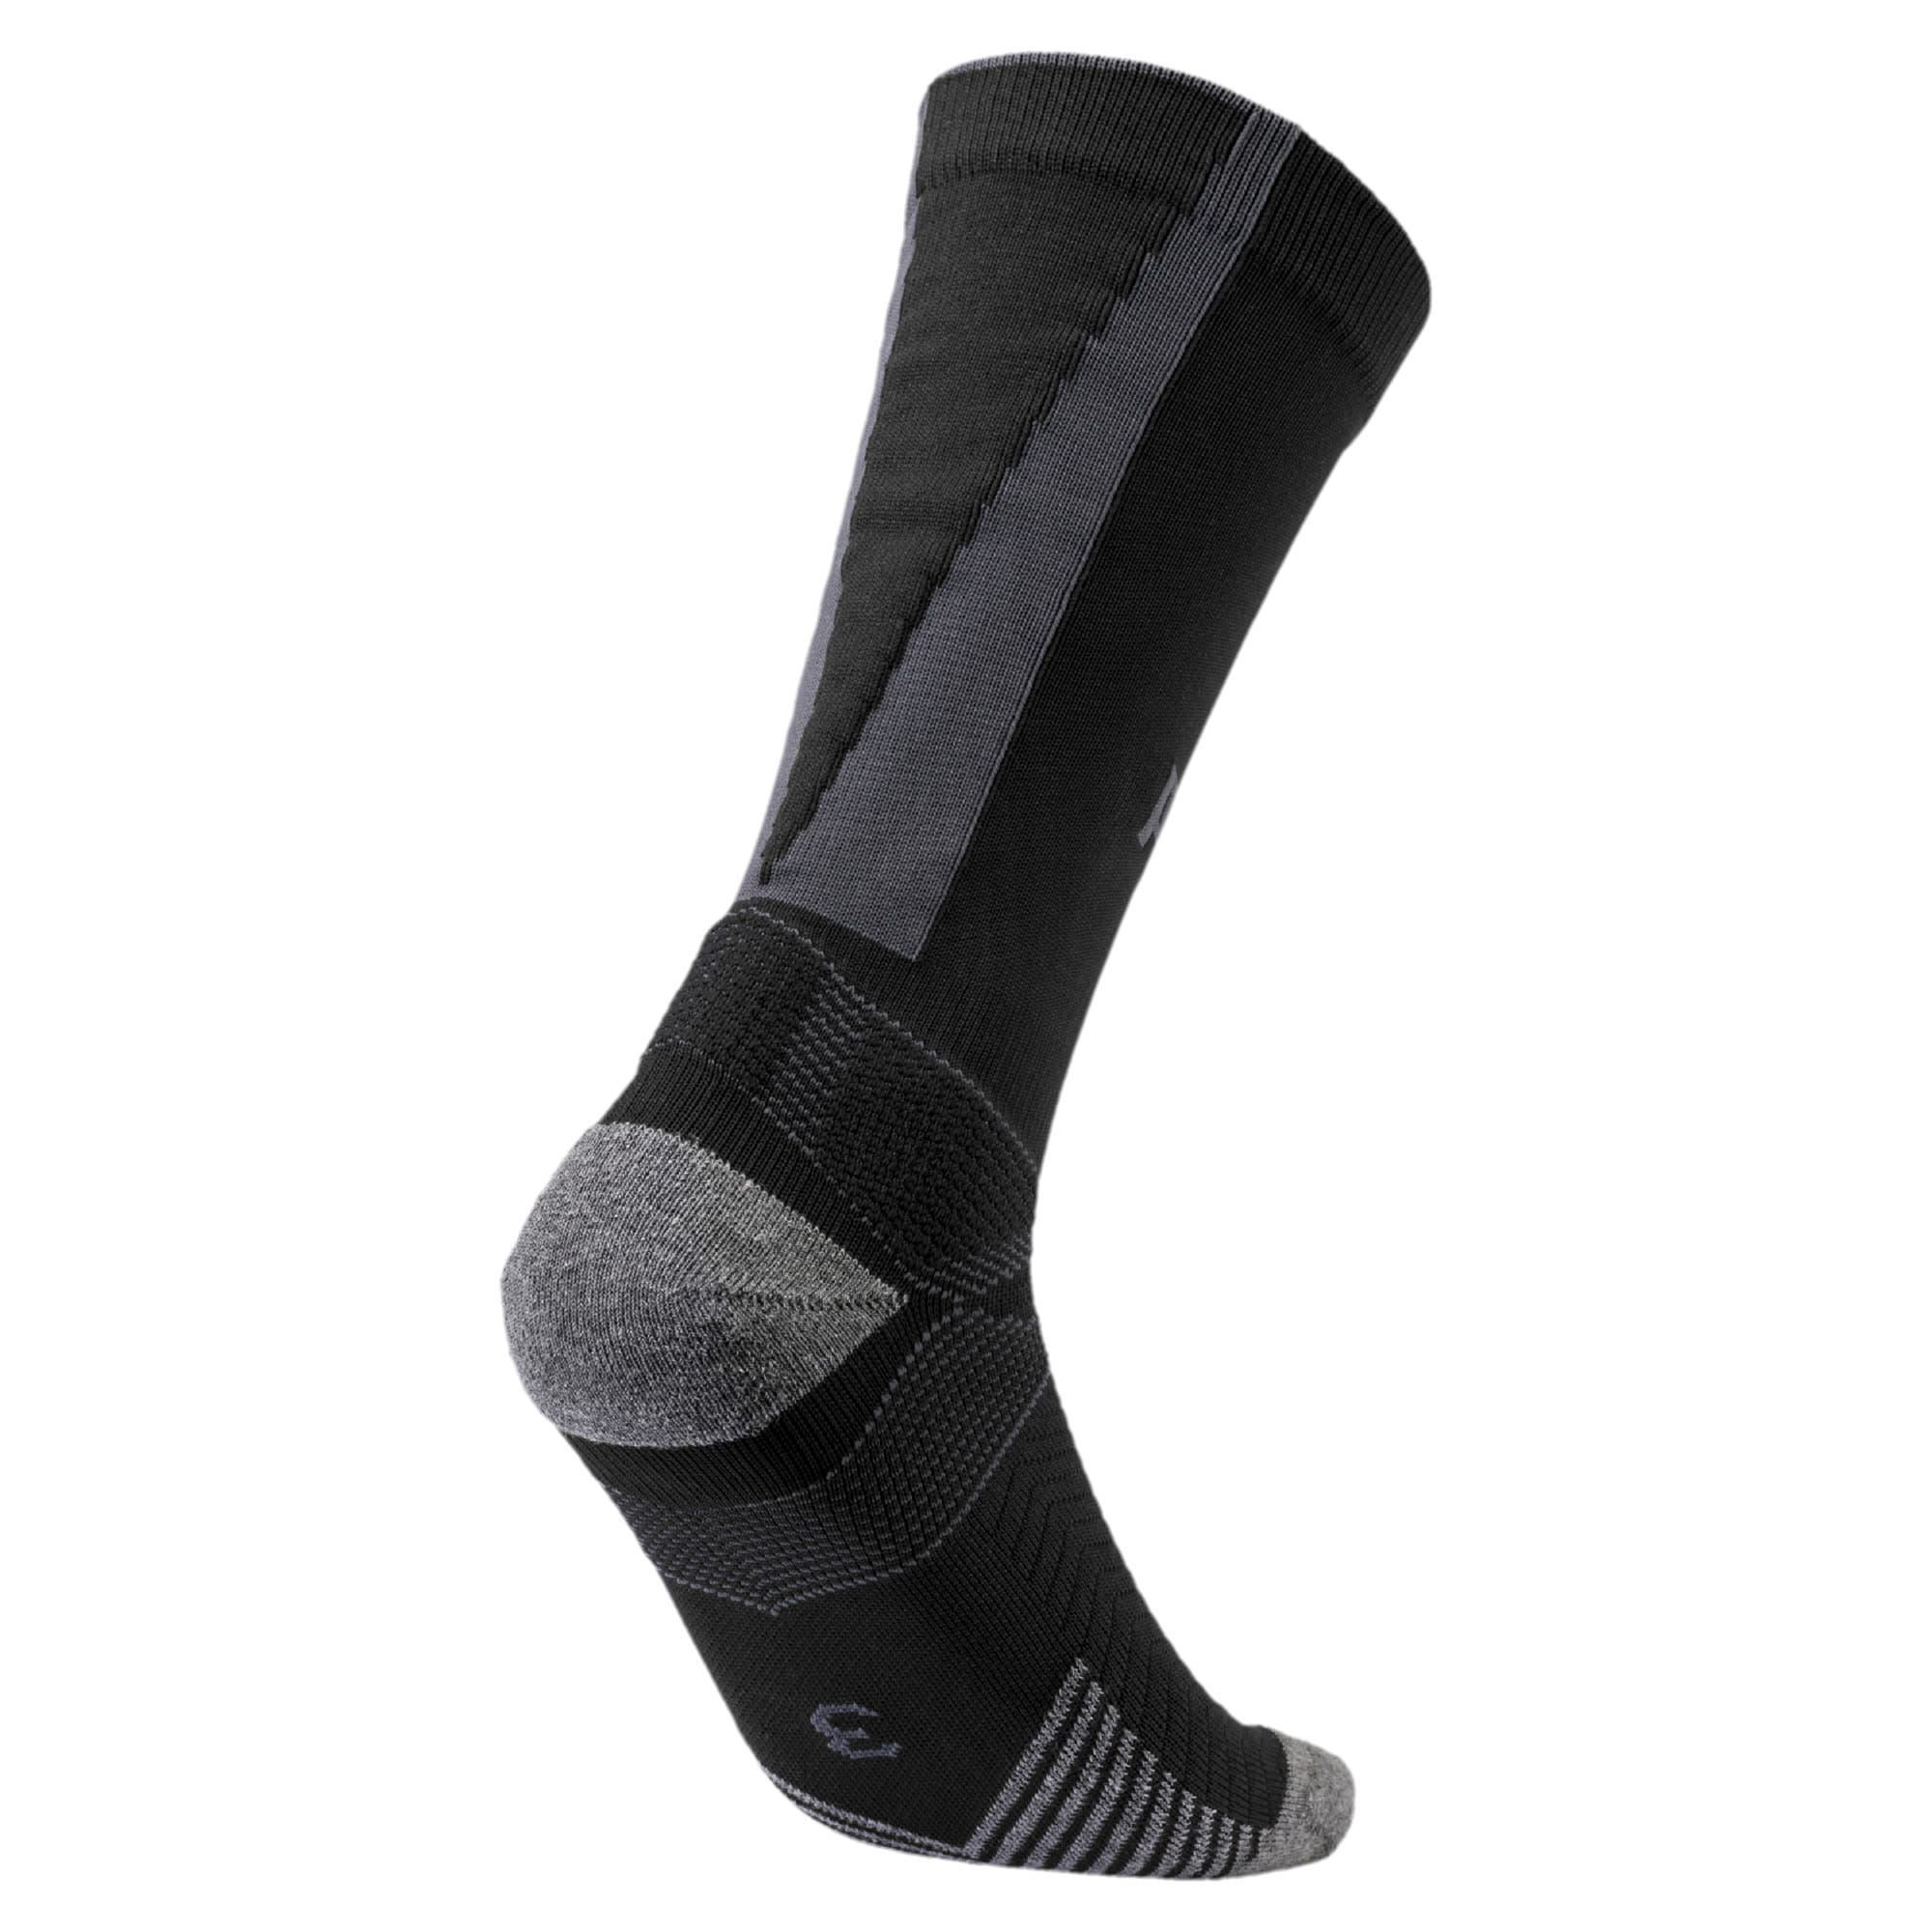 Thumbnail 2 of Team ftblNXT Casuals Men's Socks, Puma Black-puma black, medium